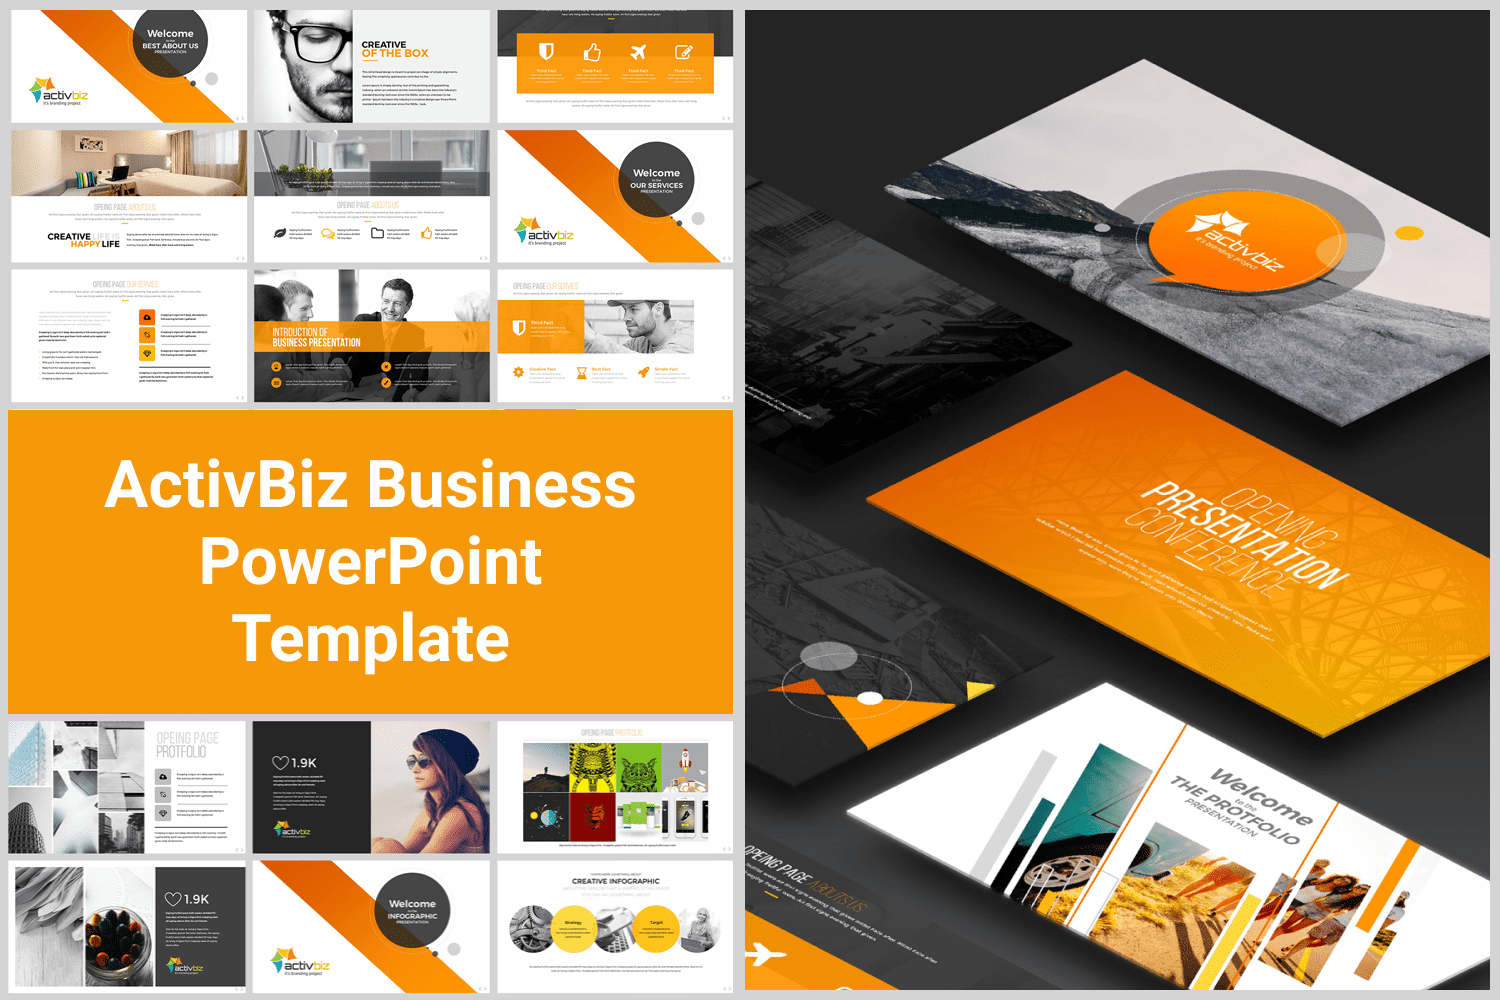 The classic template in orange is perfect for business themes.